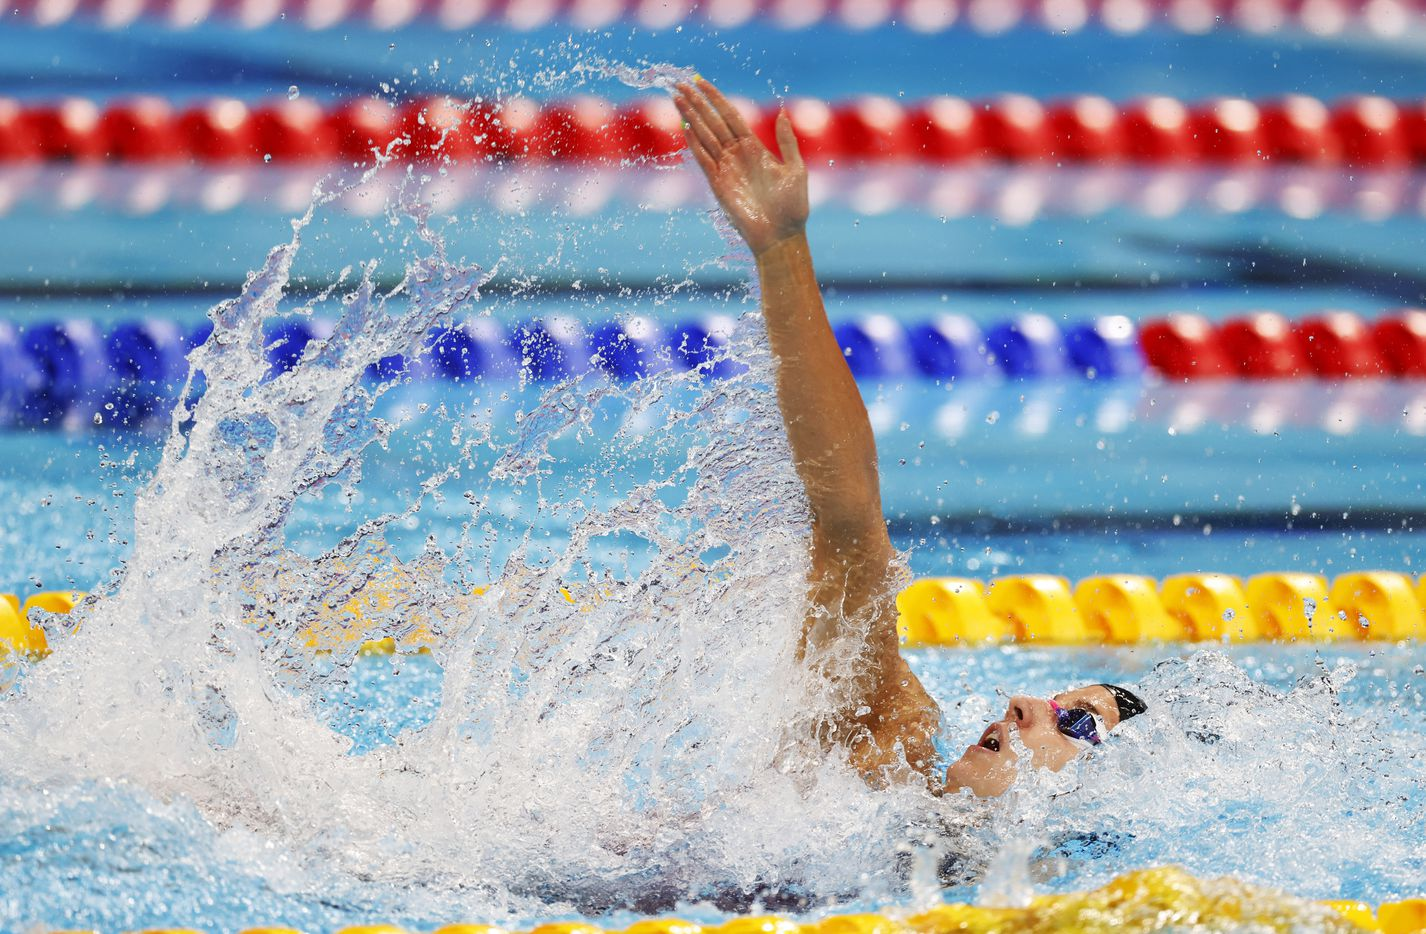 USA's Regan Smith competes in the women's 4x100 medley relay during the postponed 2020 Tokyo Olympics at Tokyo Aquatics Centre, on Sunday, August 1, 2021, in Tokyo, Japan. USA finished in second with a time of 3:51.60 to earn a silver medal. (Vernon Bryant/The Dallas Morning News)